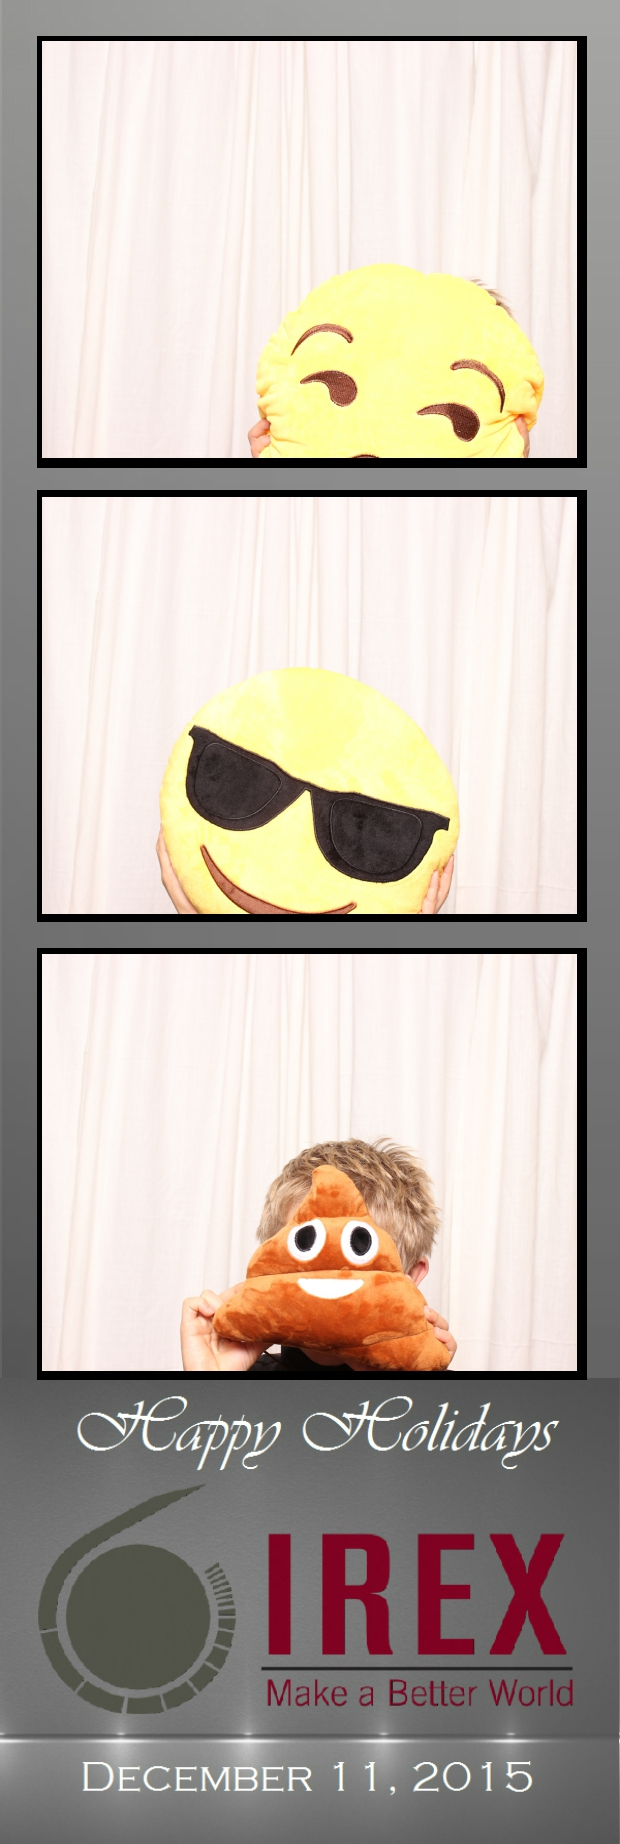 Guest House Events Photo Booth Strips IREX (15).jpg